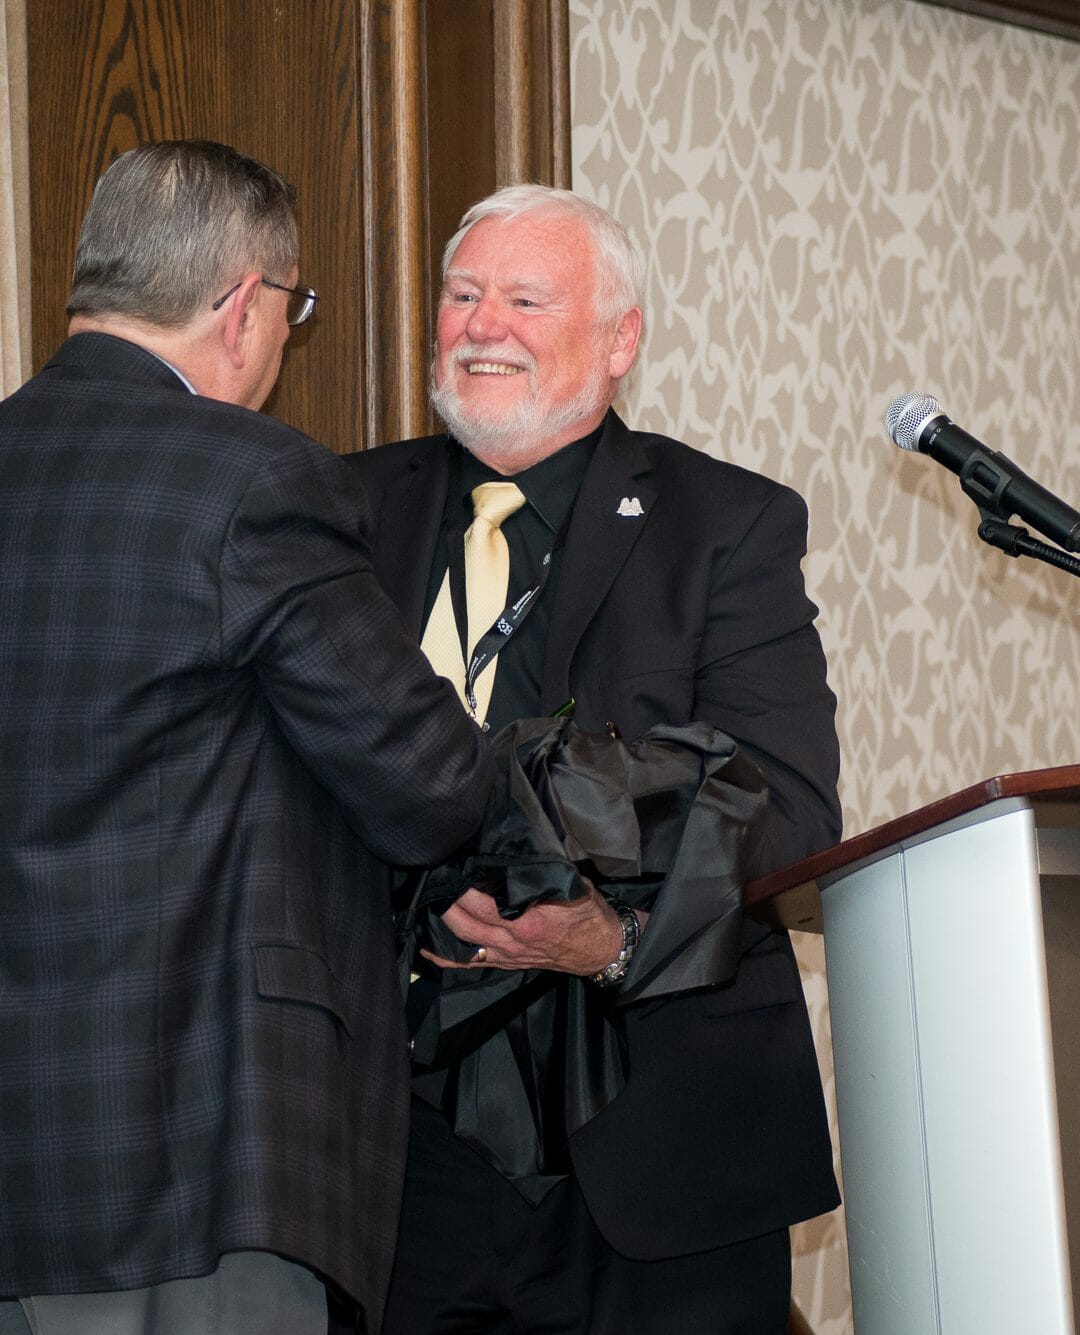 Ed Harding (left) presenting Dennis James (right) with the Ed & Bobby Yielding Award at the 2017 Guardian Angel Luncheon.